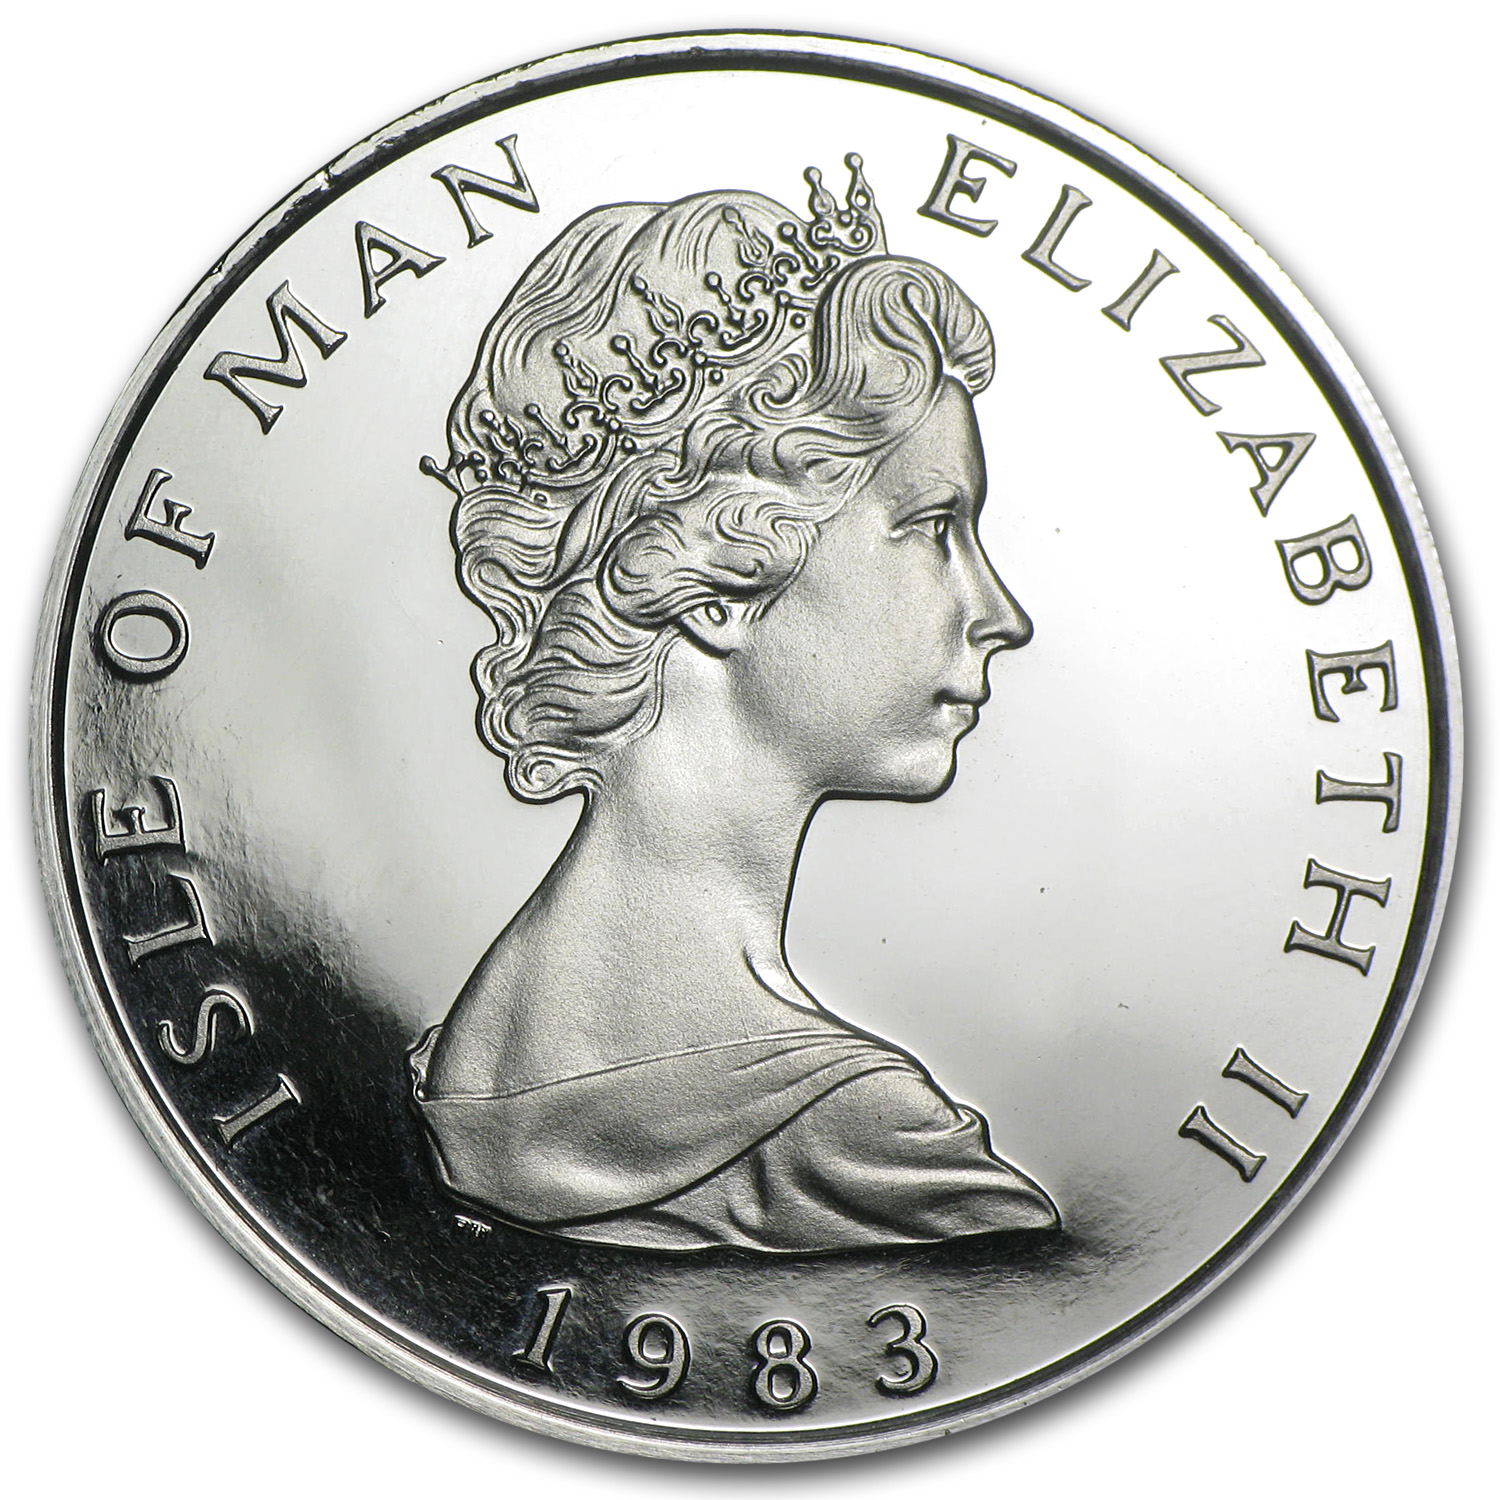 1983 Isle of Man 1 oz Platinum Noble Proof